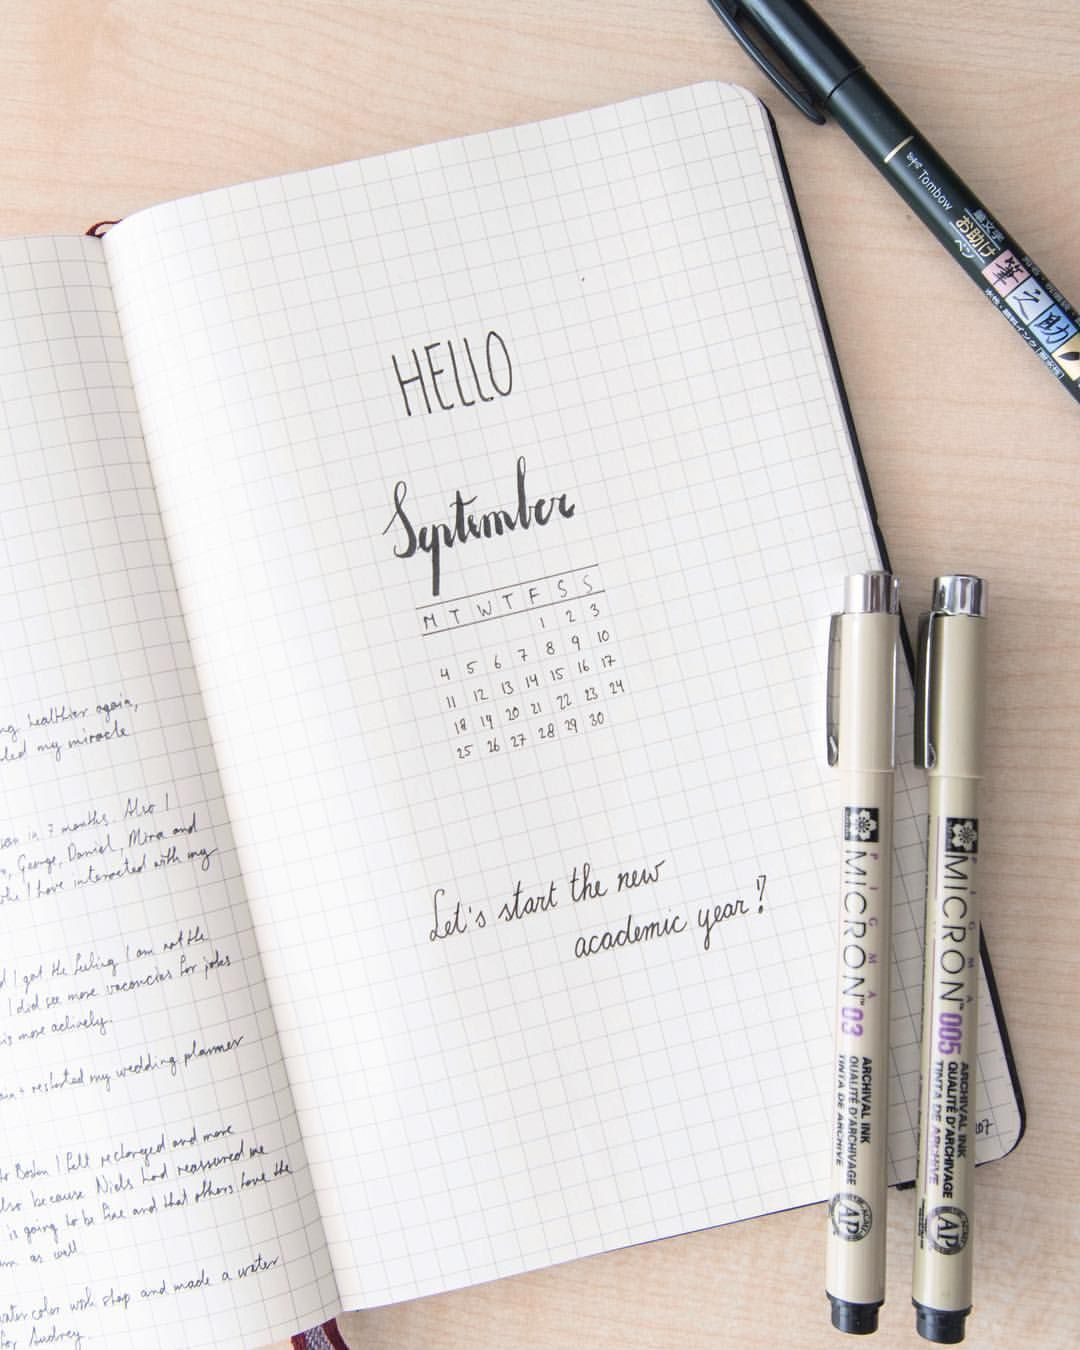 Hello September, hello bullet journal  Hello September, hello bullet journal #helloseptember Hello September, hello bullet journal  Hello September, hello bullet journal #helloseptember Hello September, hello bullet journal  Hello September, hello bullet journal #helloseptember Hello September, hello bullet journal  Hello September, hello bullet journal #helloseptember